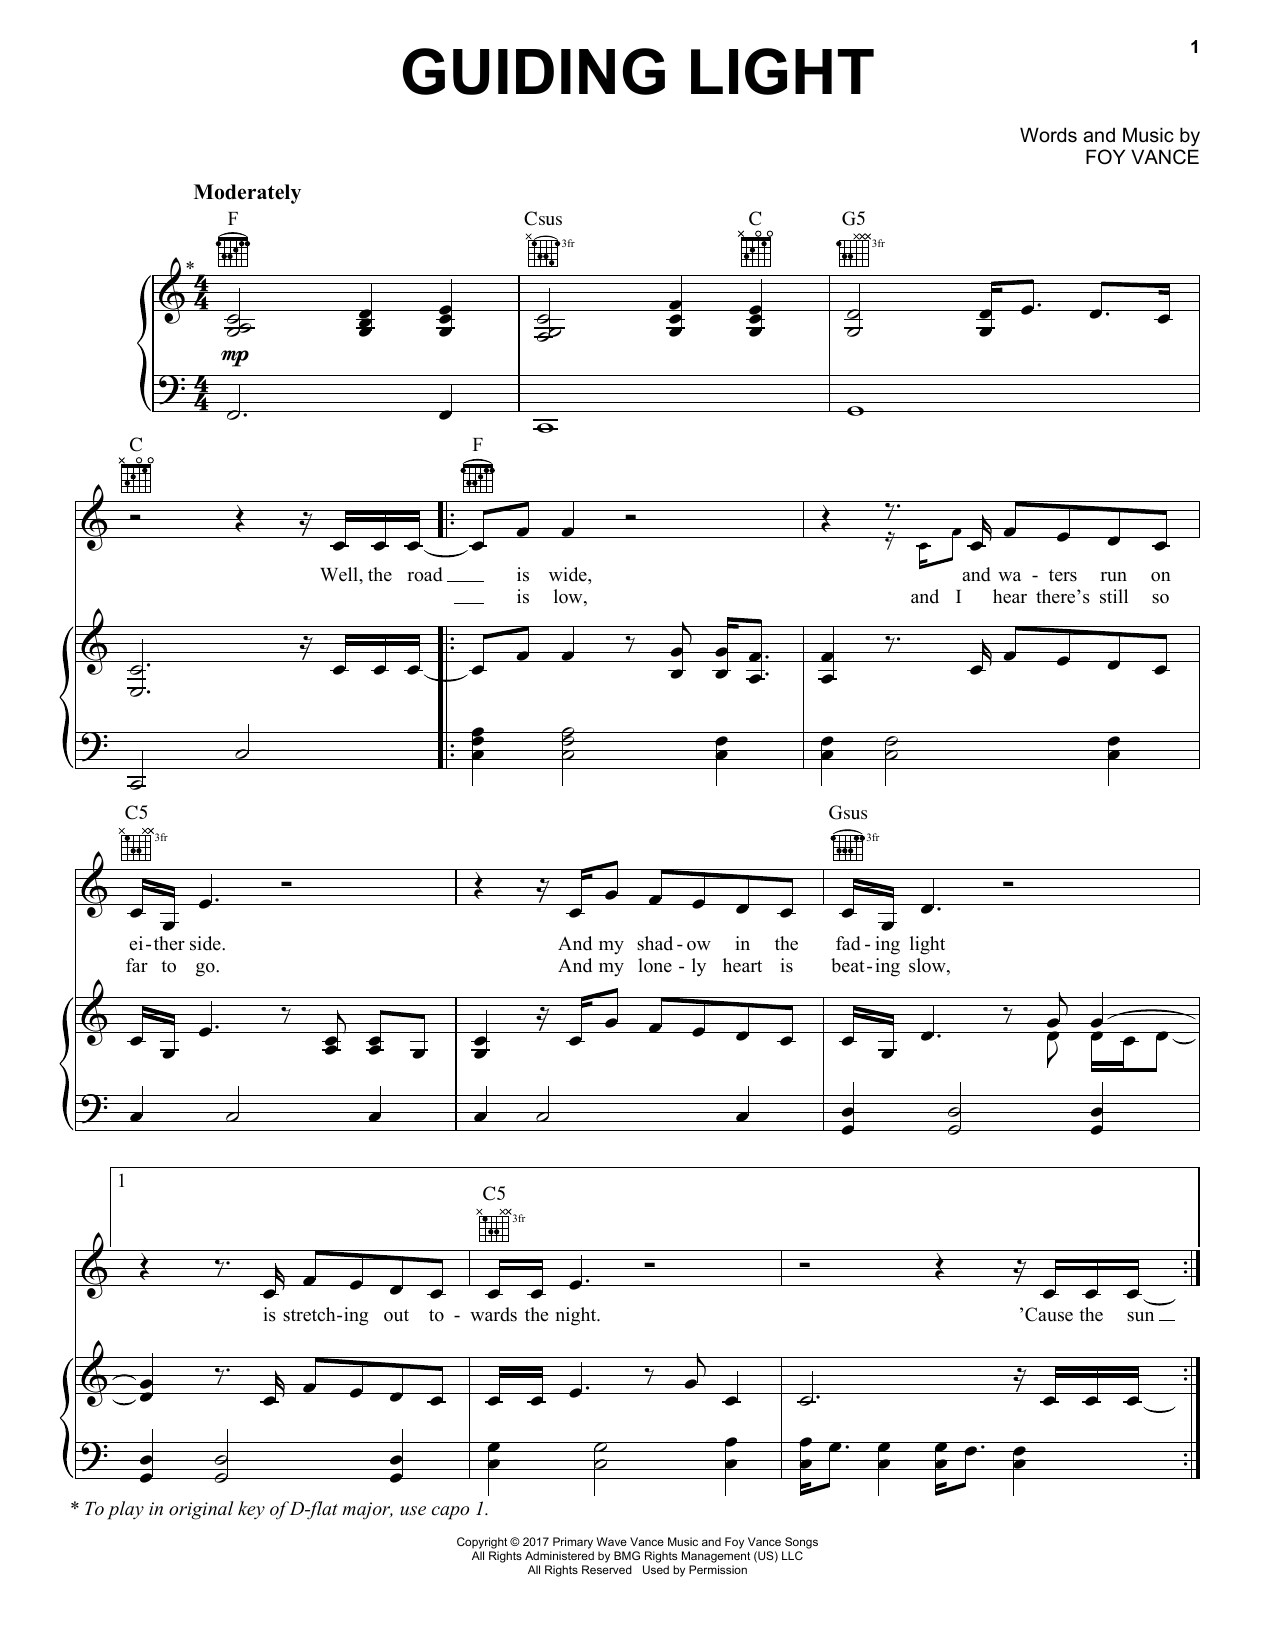 Foy Vance feat. Ed Sheeran Guiding Light sheet music notes and chords. Download Printable PDF.